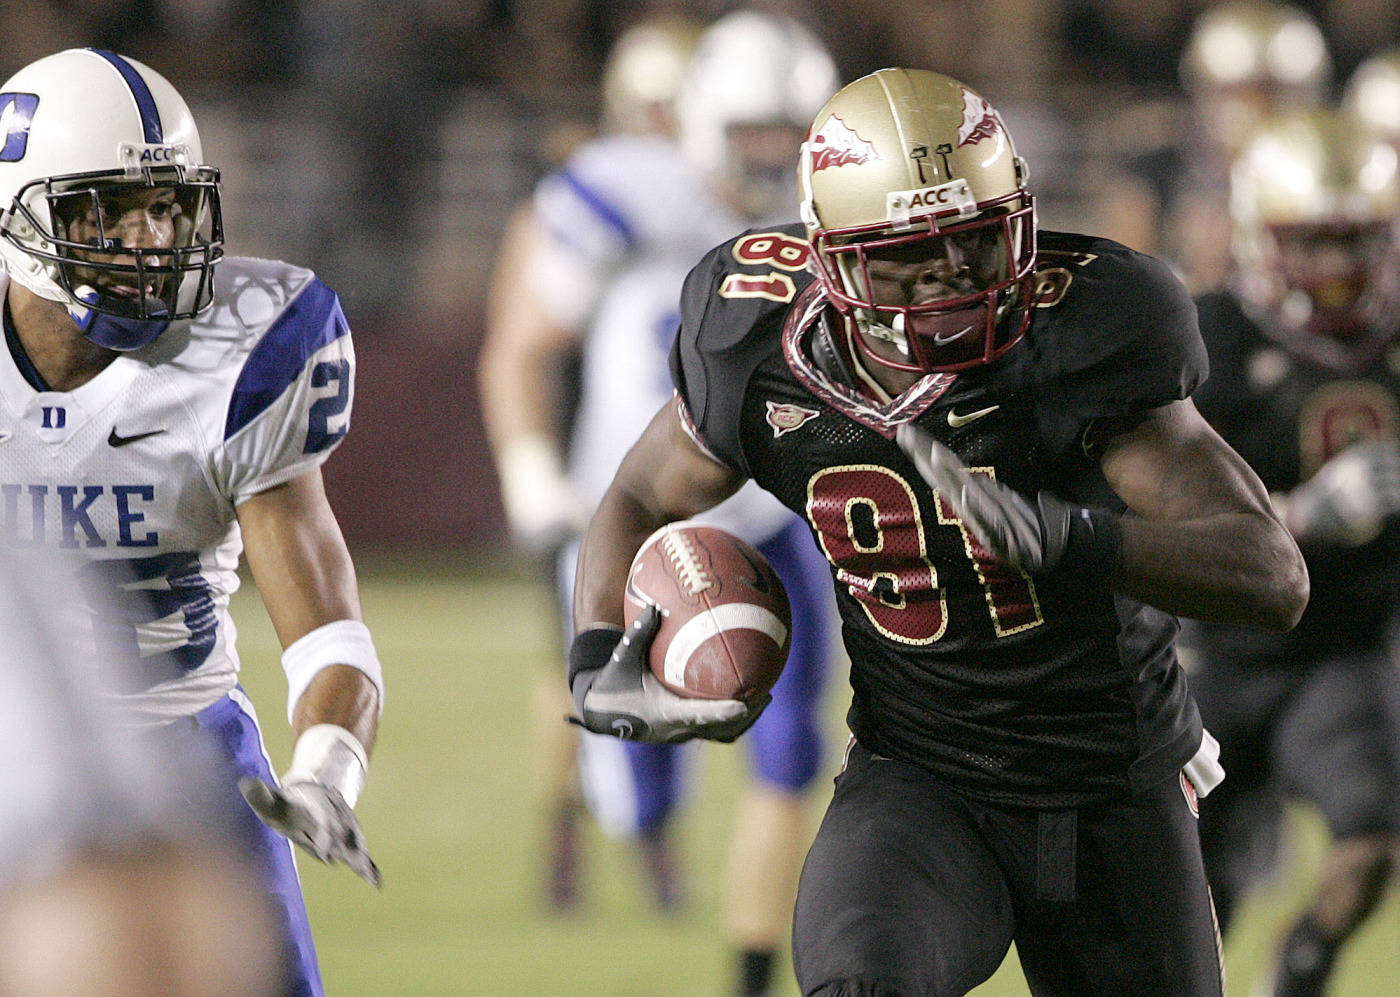 Florida State's Antone Smith runs for a long gain against Duke's defense. (AP Photo/Steve Cannon)